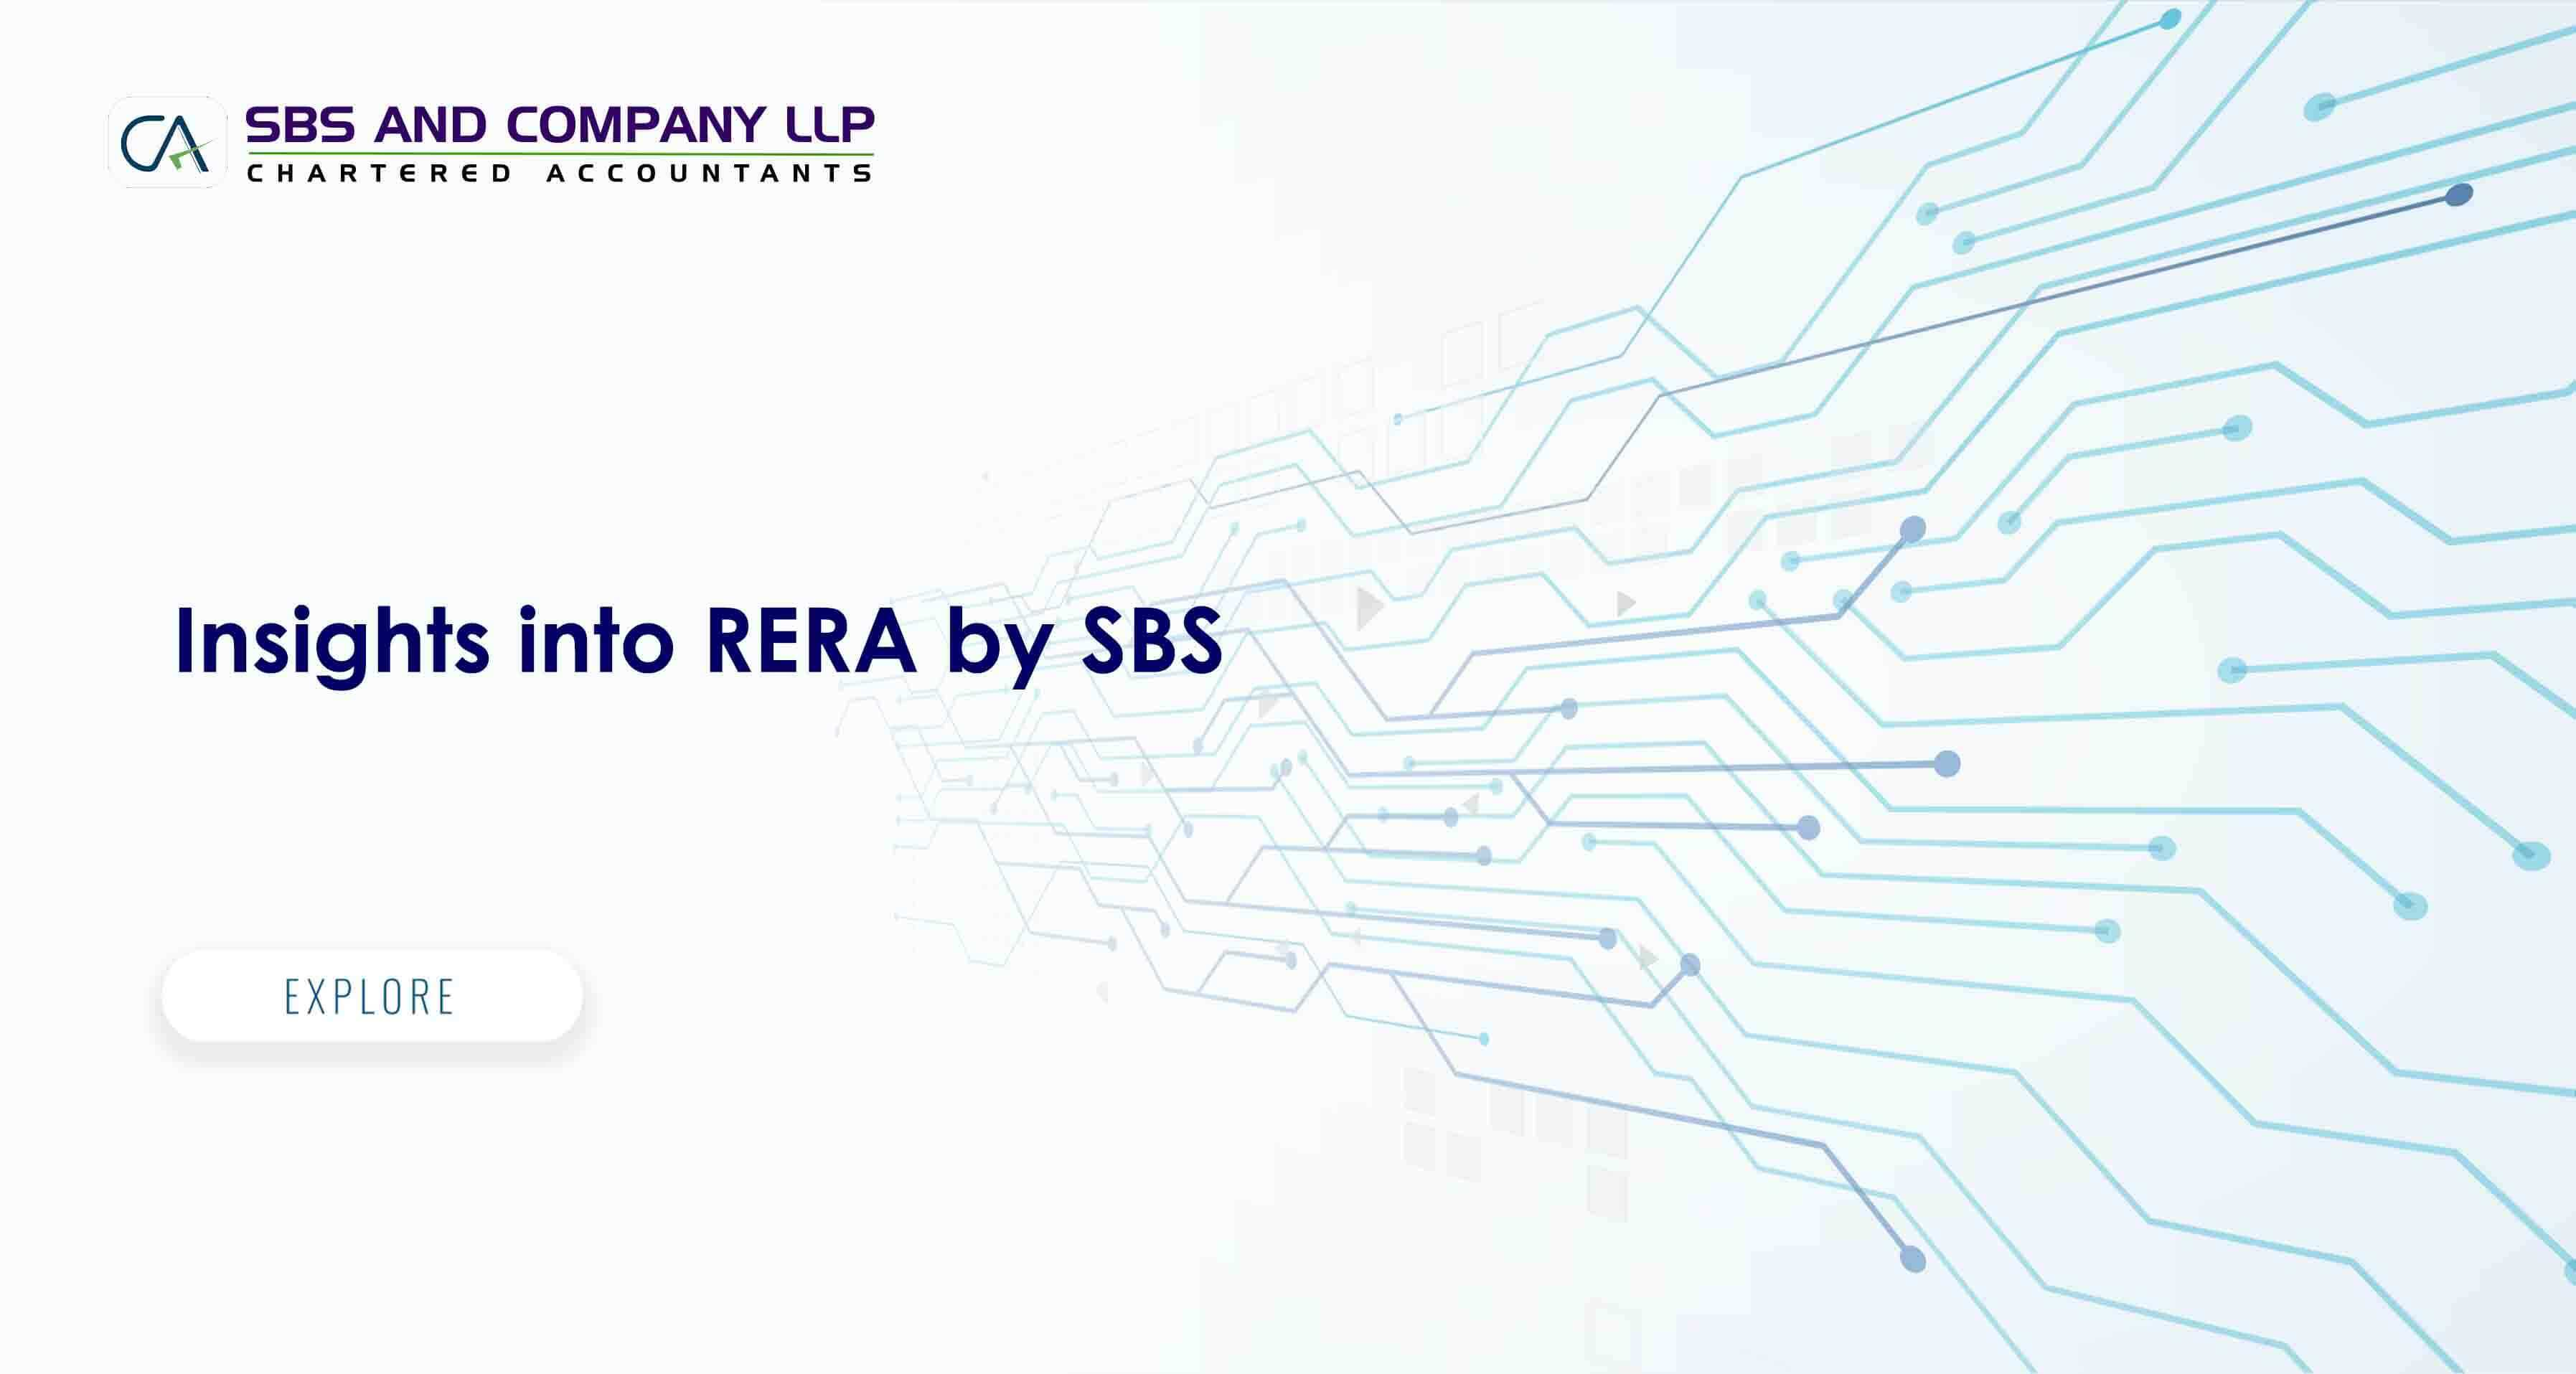 Insights into RERA by SBS